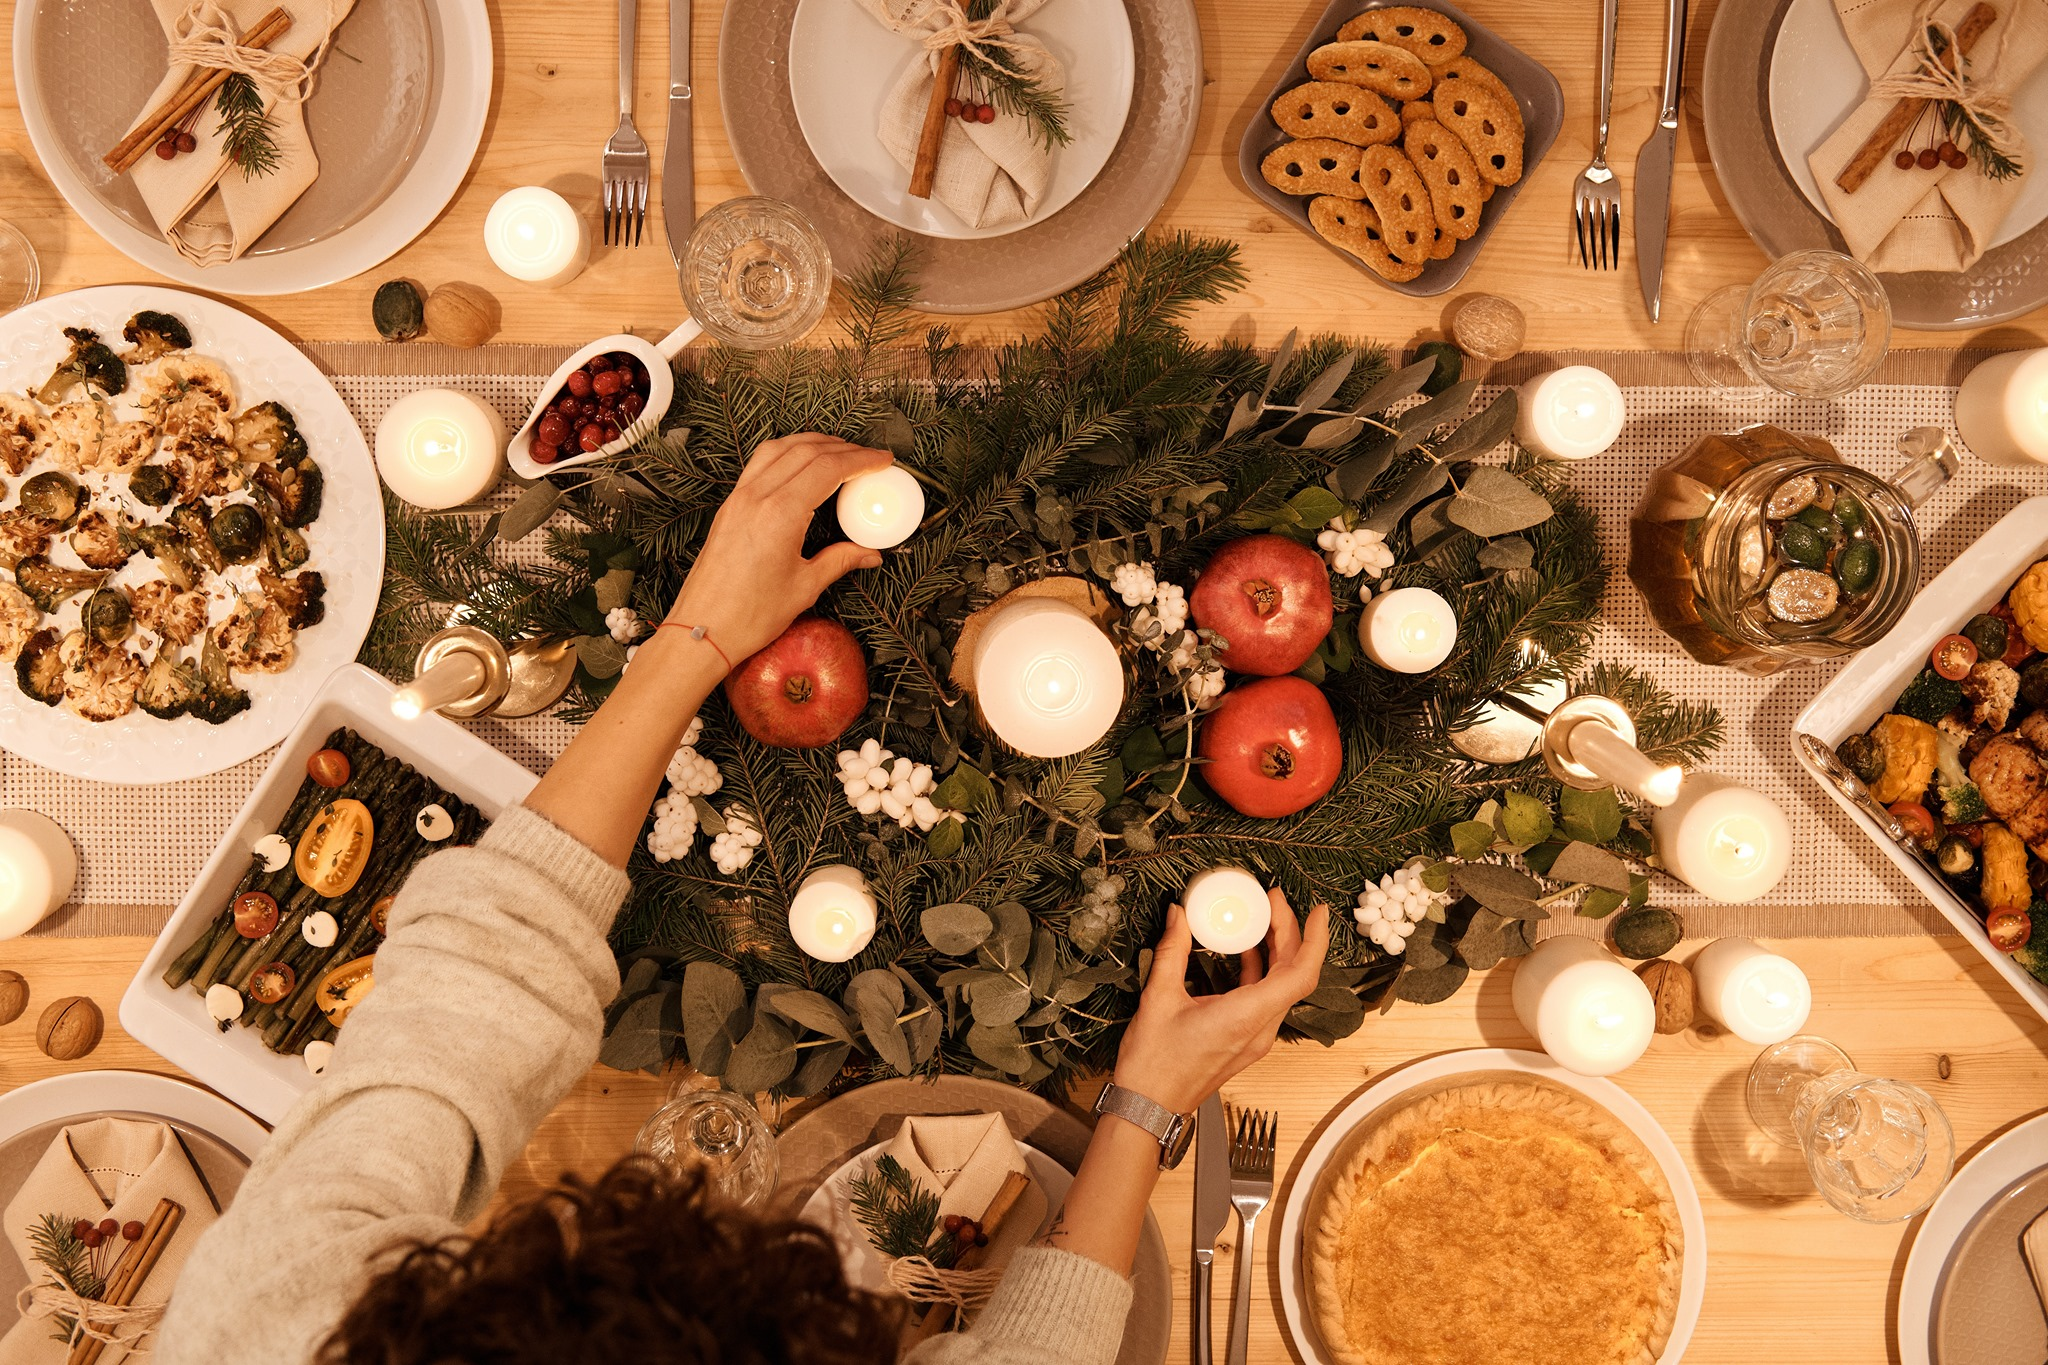 A picture showing a Christmas dinner table - Christmas nutrition guide